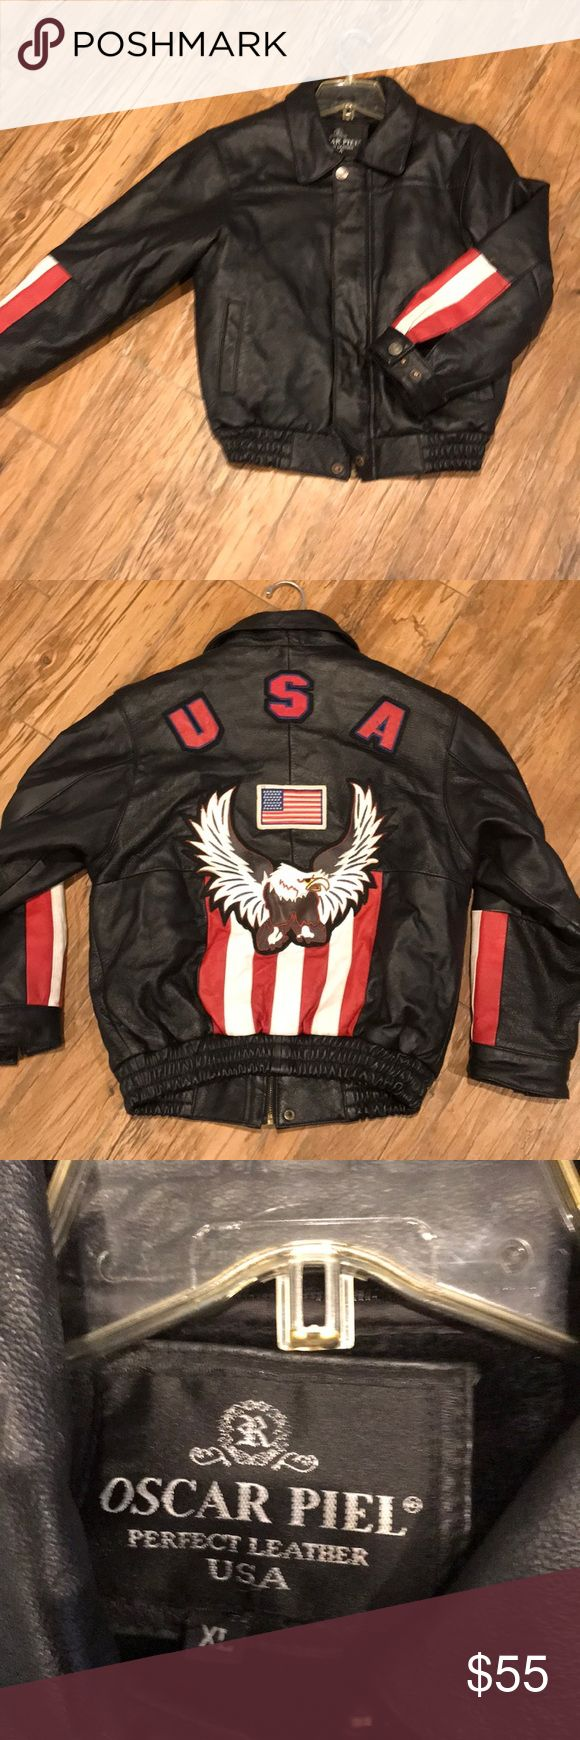 Boys leather jacket!! Xl genuine leather boys jacket!  Great condition, barely worn!  Zipper pull is missing and replaced by a paper clip to pull up and down! oscar piel Jackets & Coats